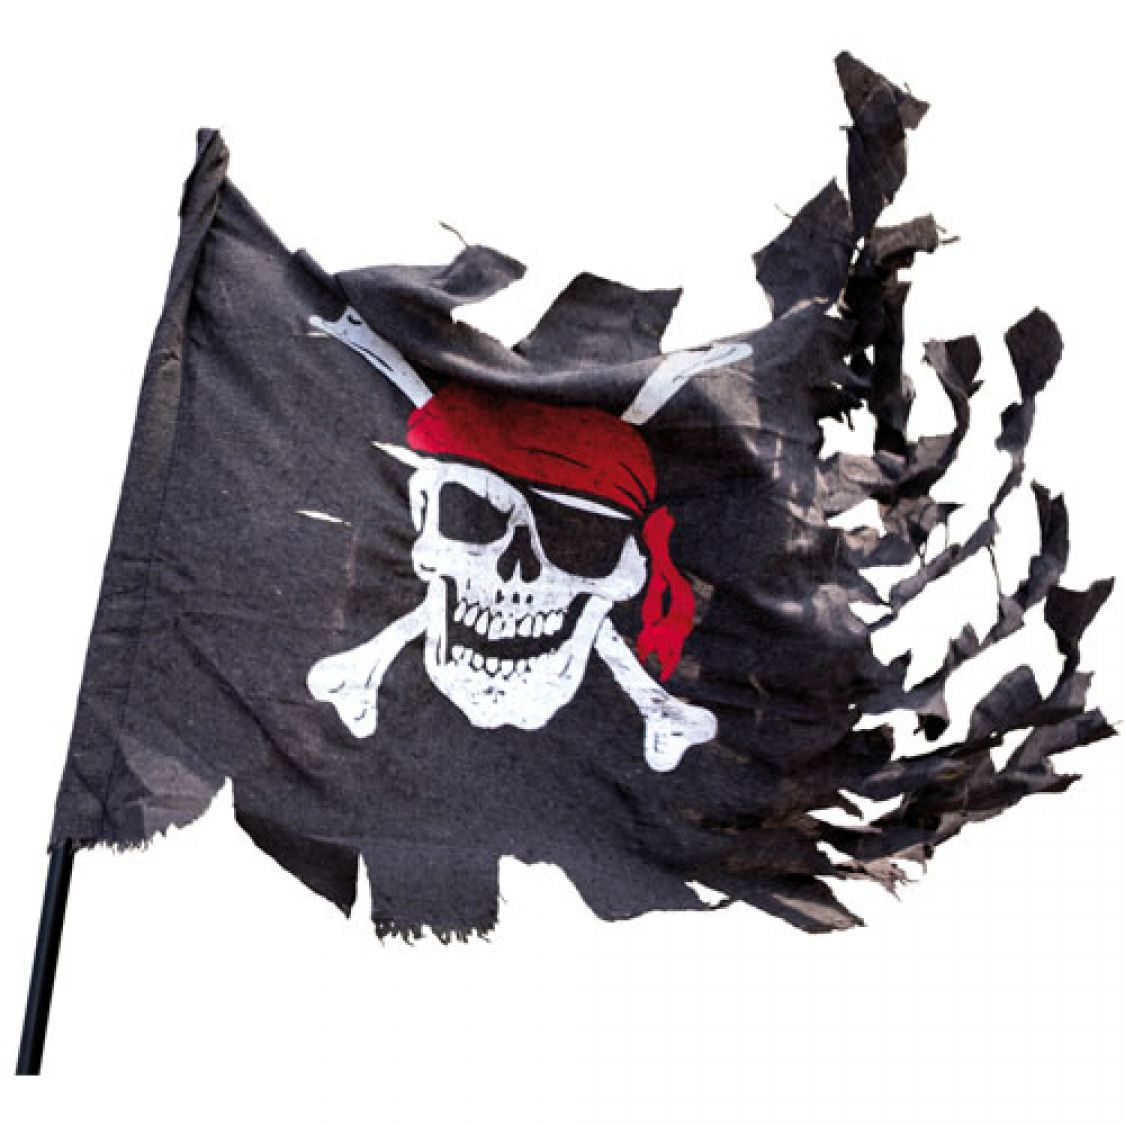 Drapeau Pavillon Pirate Dchir